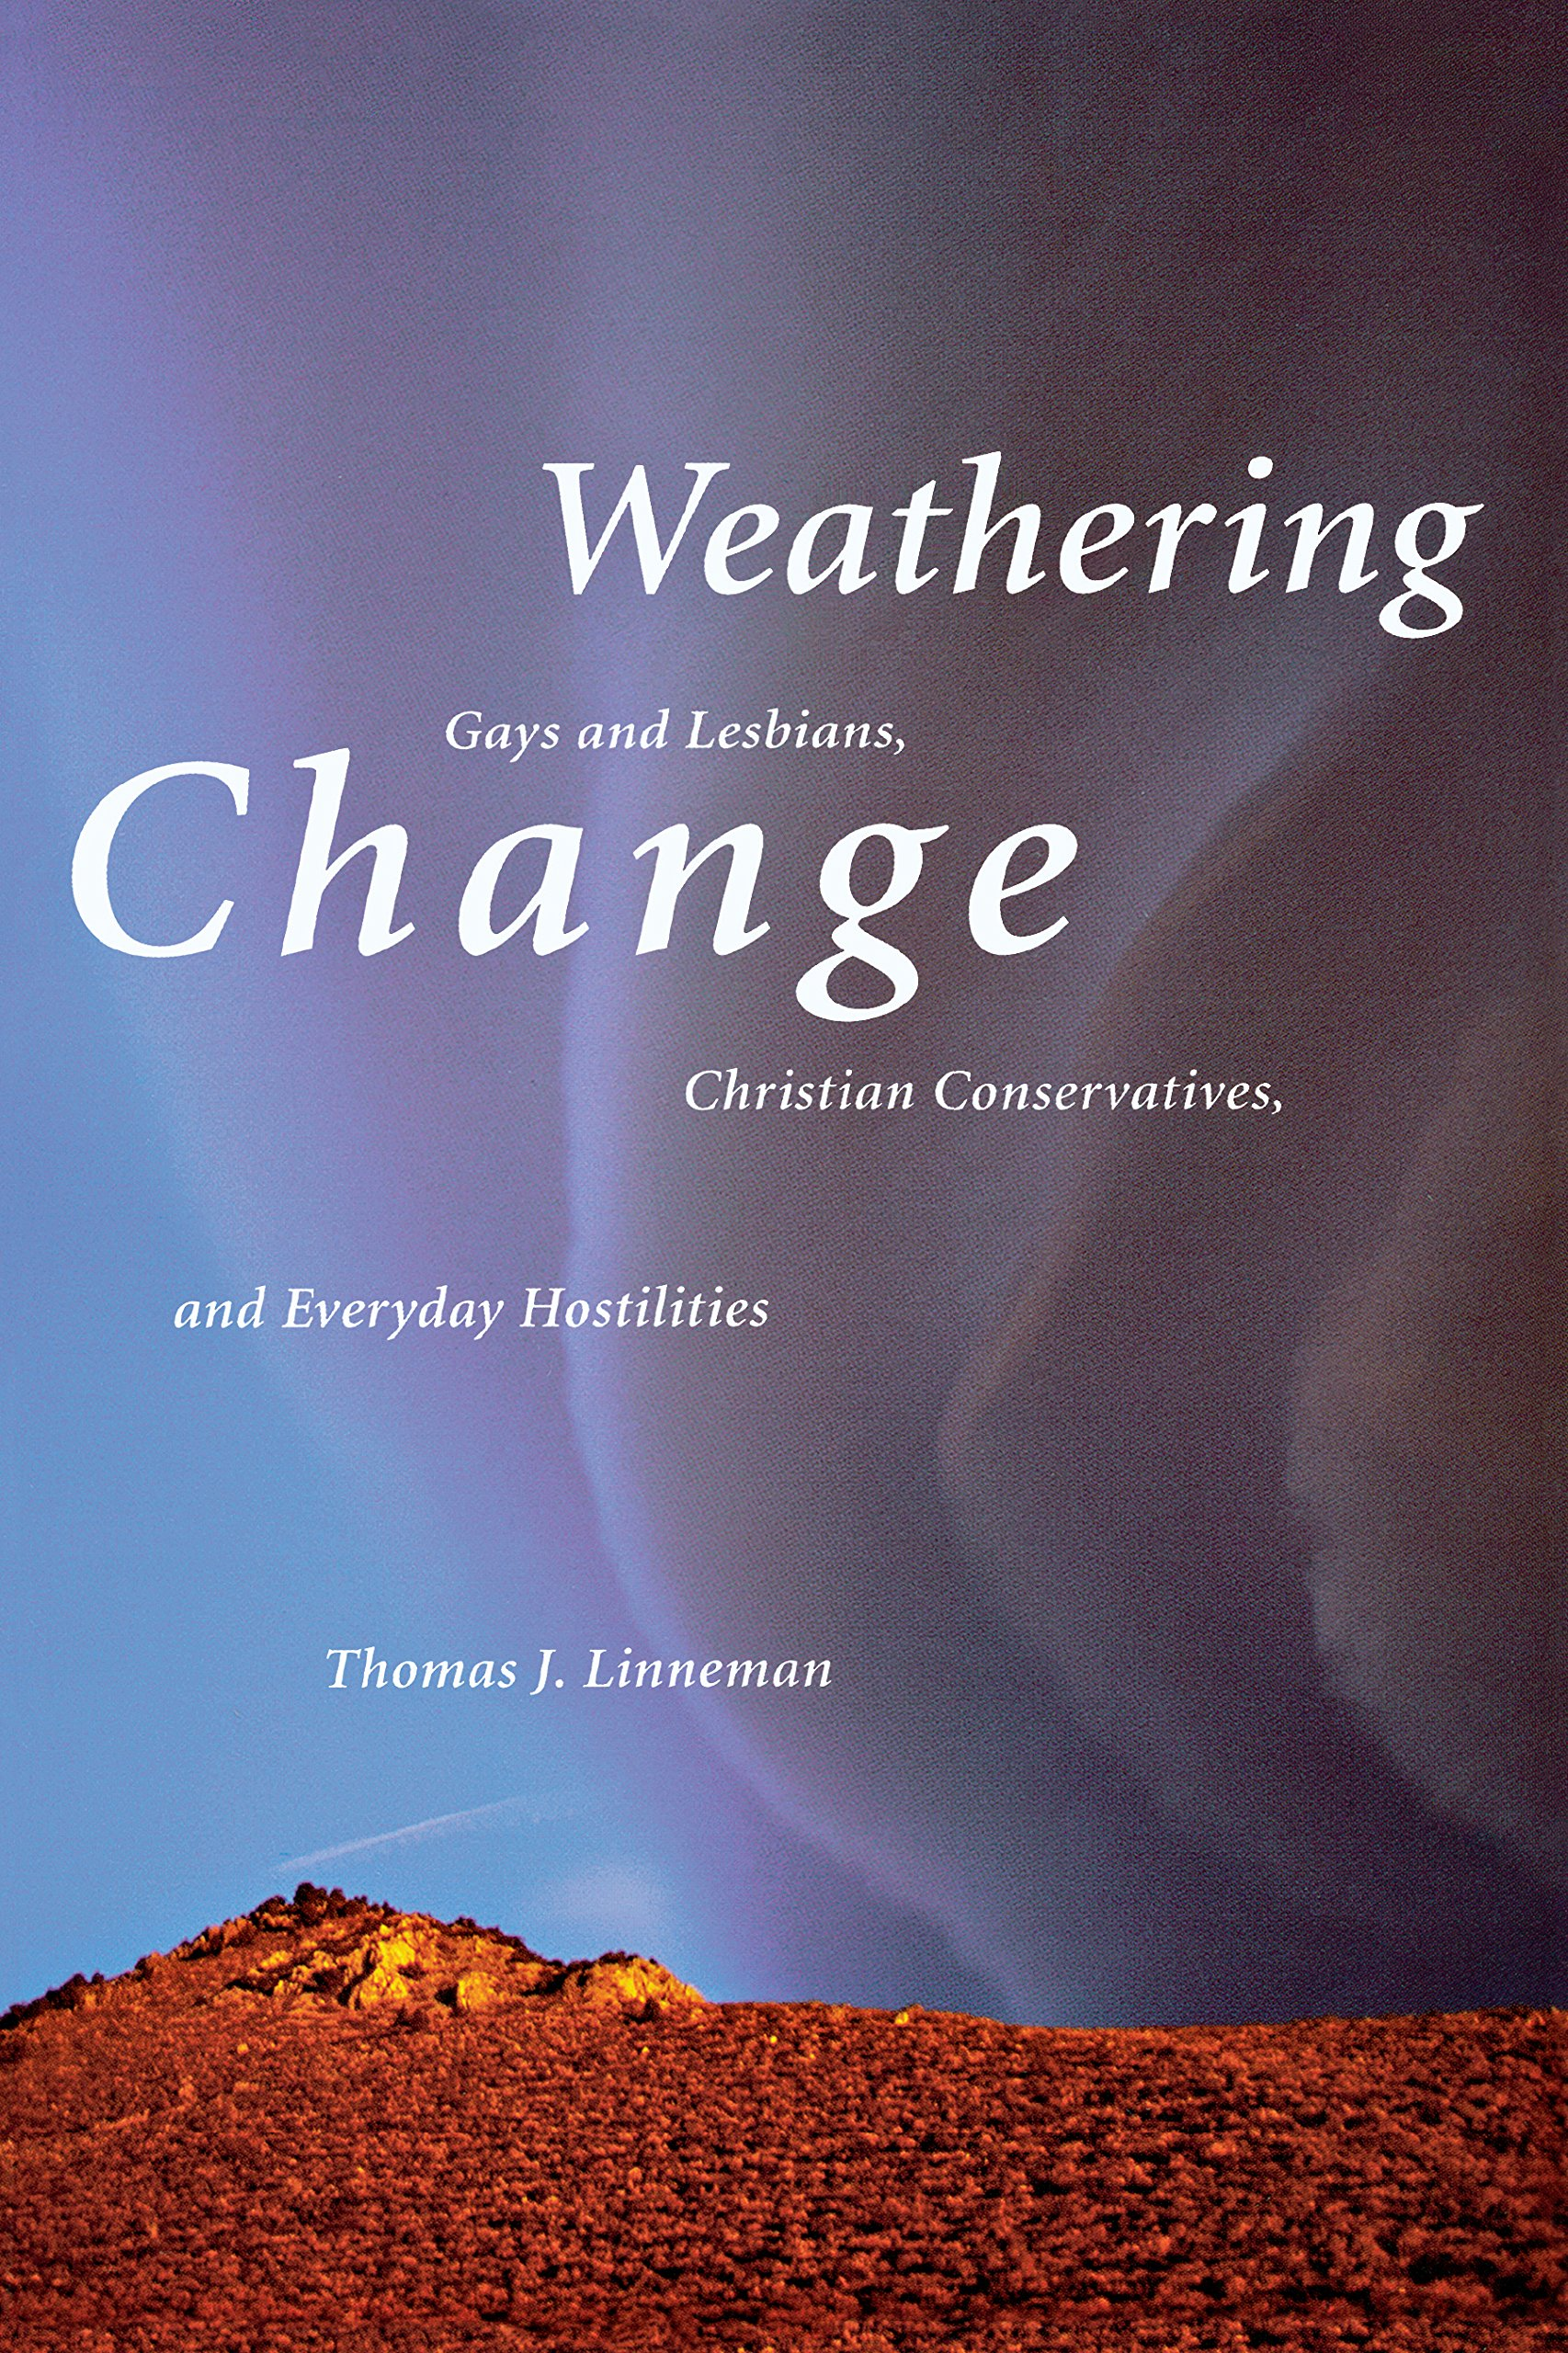 Change christian conservative everyday gay hostilities lesbian weathering